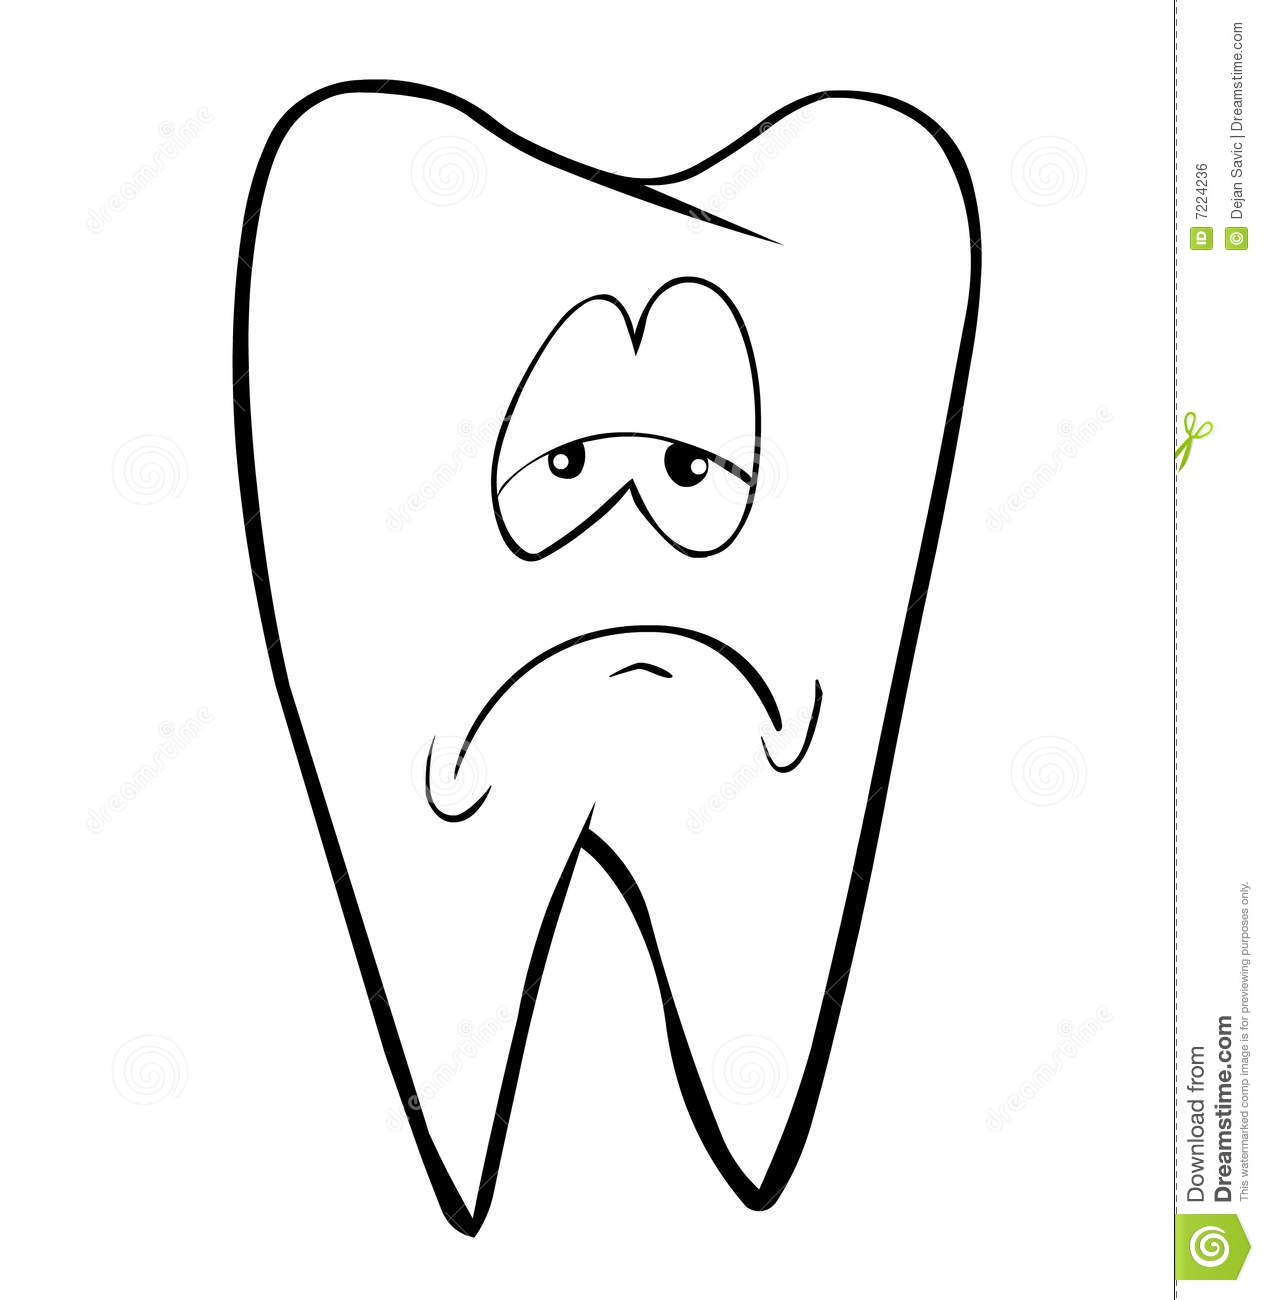 Tooth stock illustration. Illustration of card, character